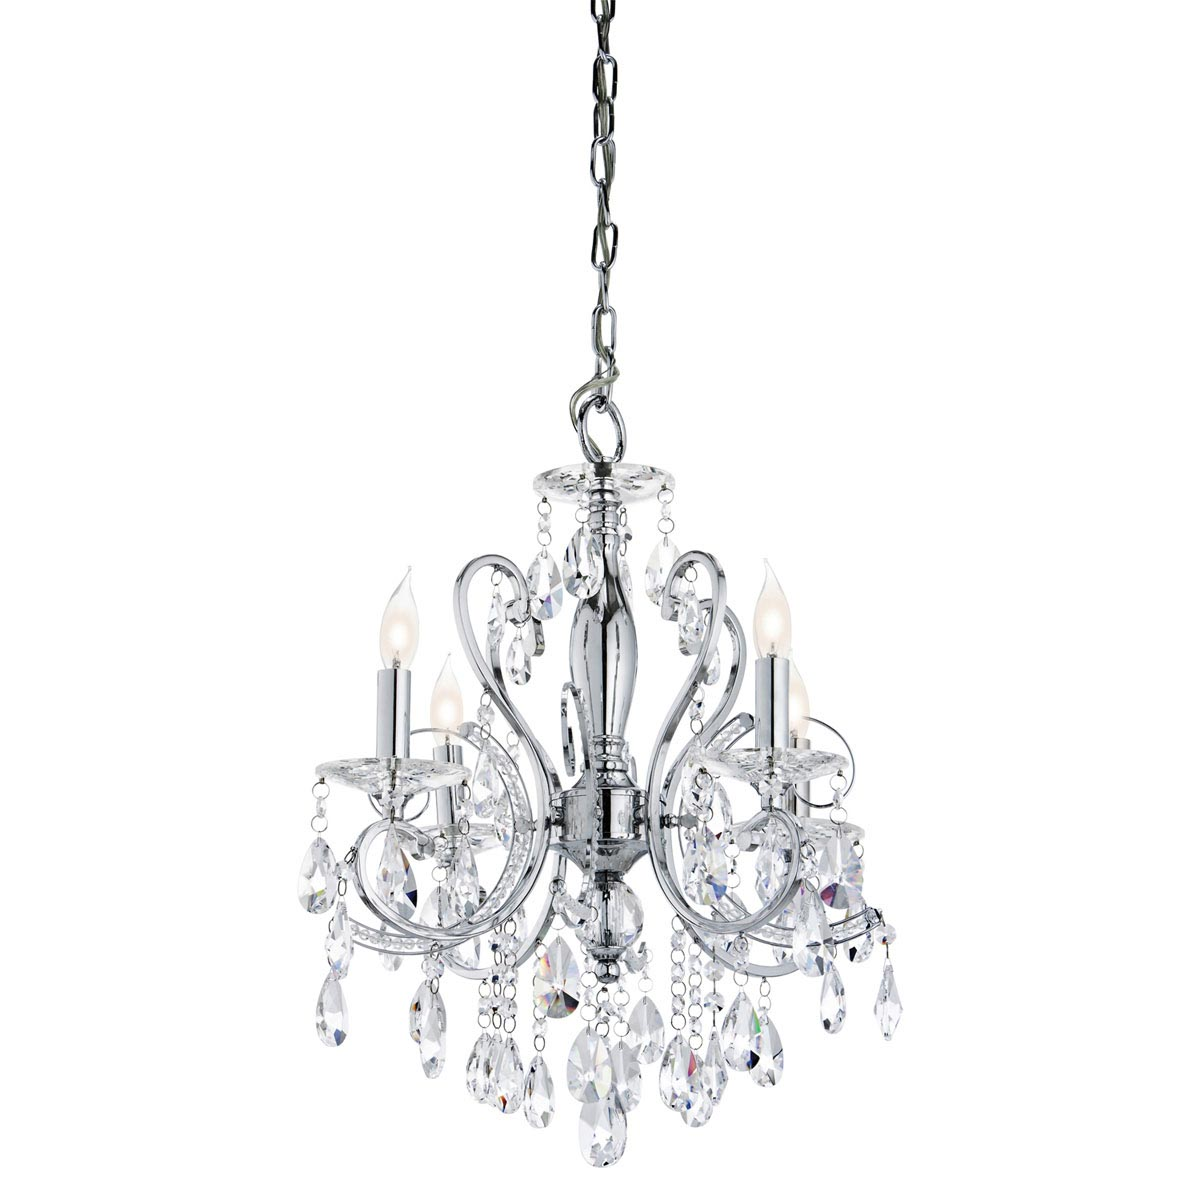 Mini crystal chandeliers for bathroom light fixtures for Small chandeliers for bathrooms